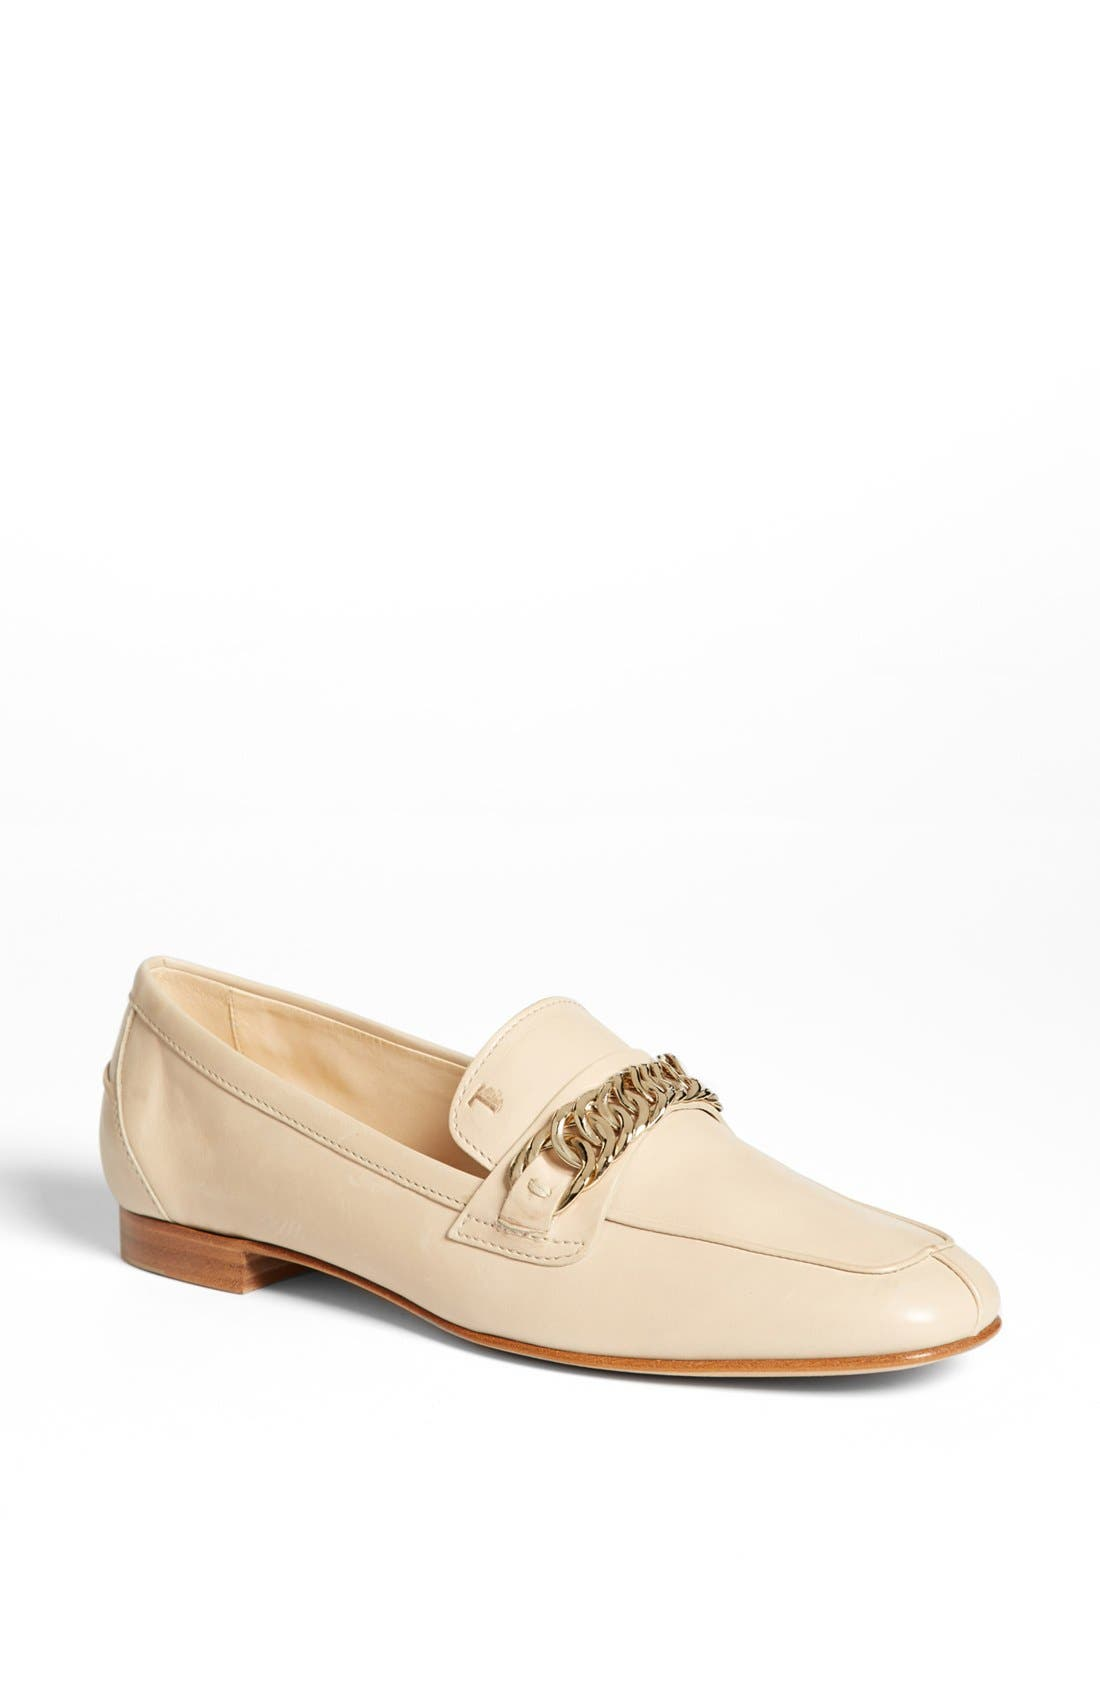 Main Image - Tod's Leather Moccasin Loafer